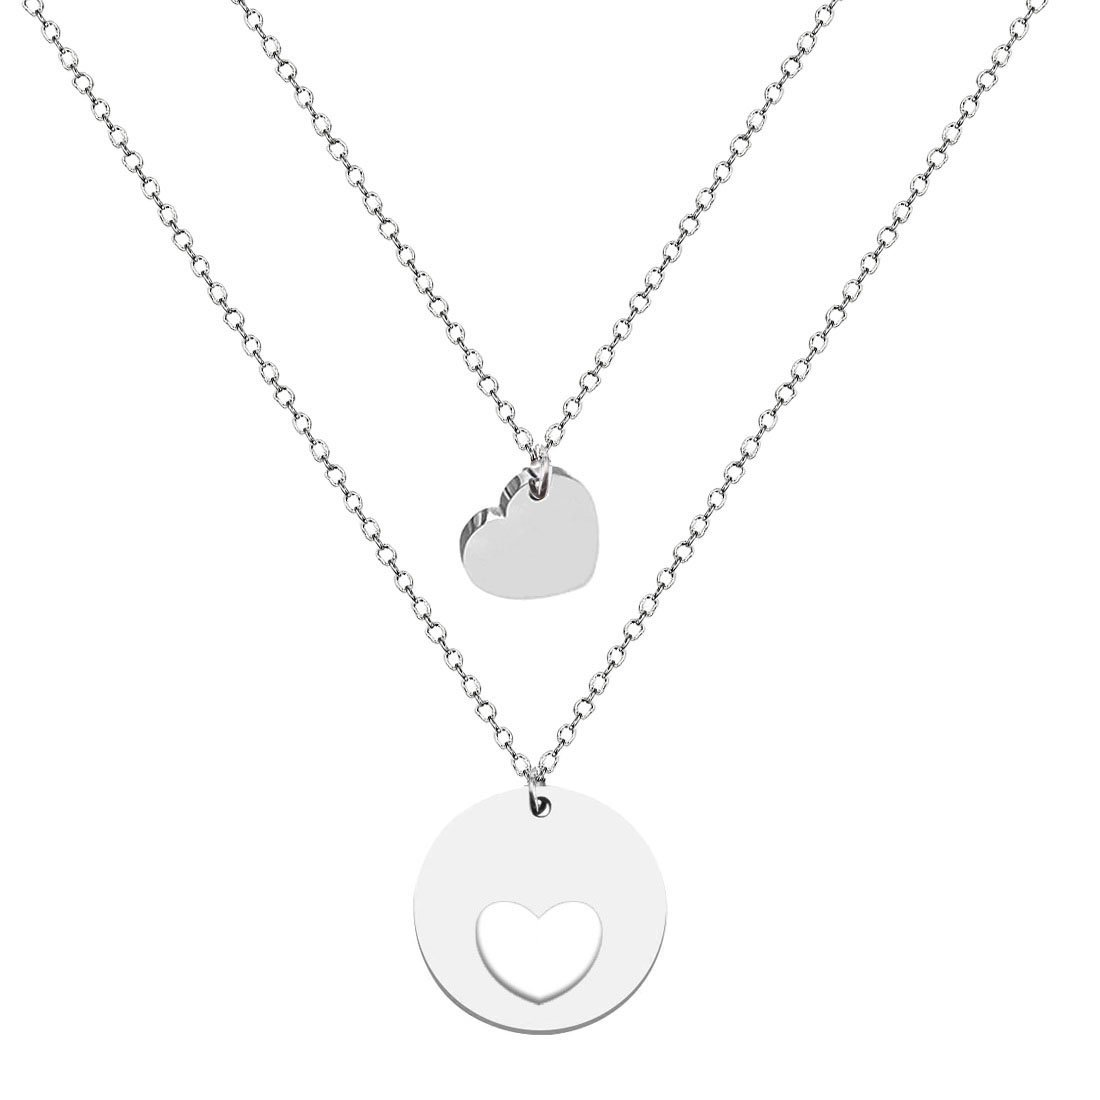 JJTZX Mother Daughter Necklace&Bracelet Set-The Love Between Mother and Daughter is Forever Mommy and Me Gift (Necklace set of 2)